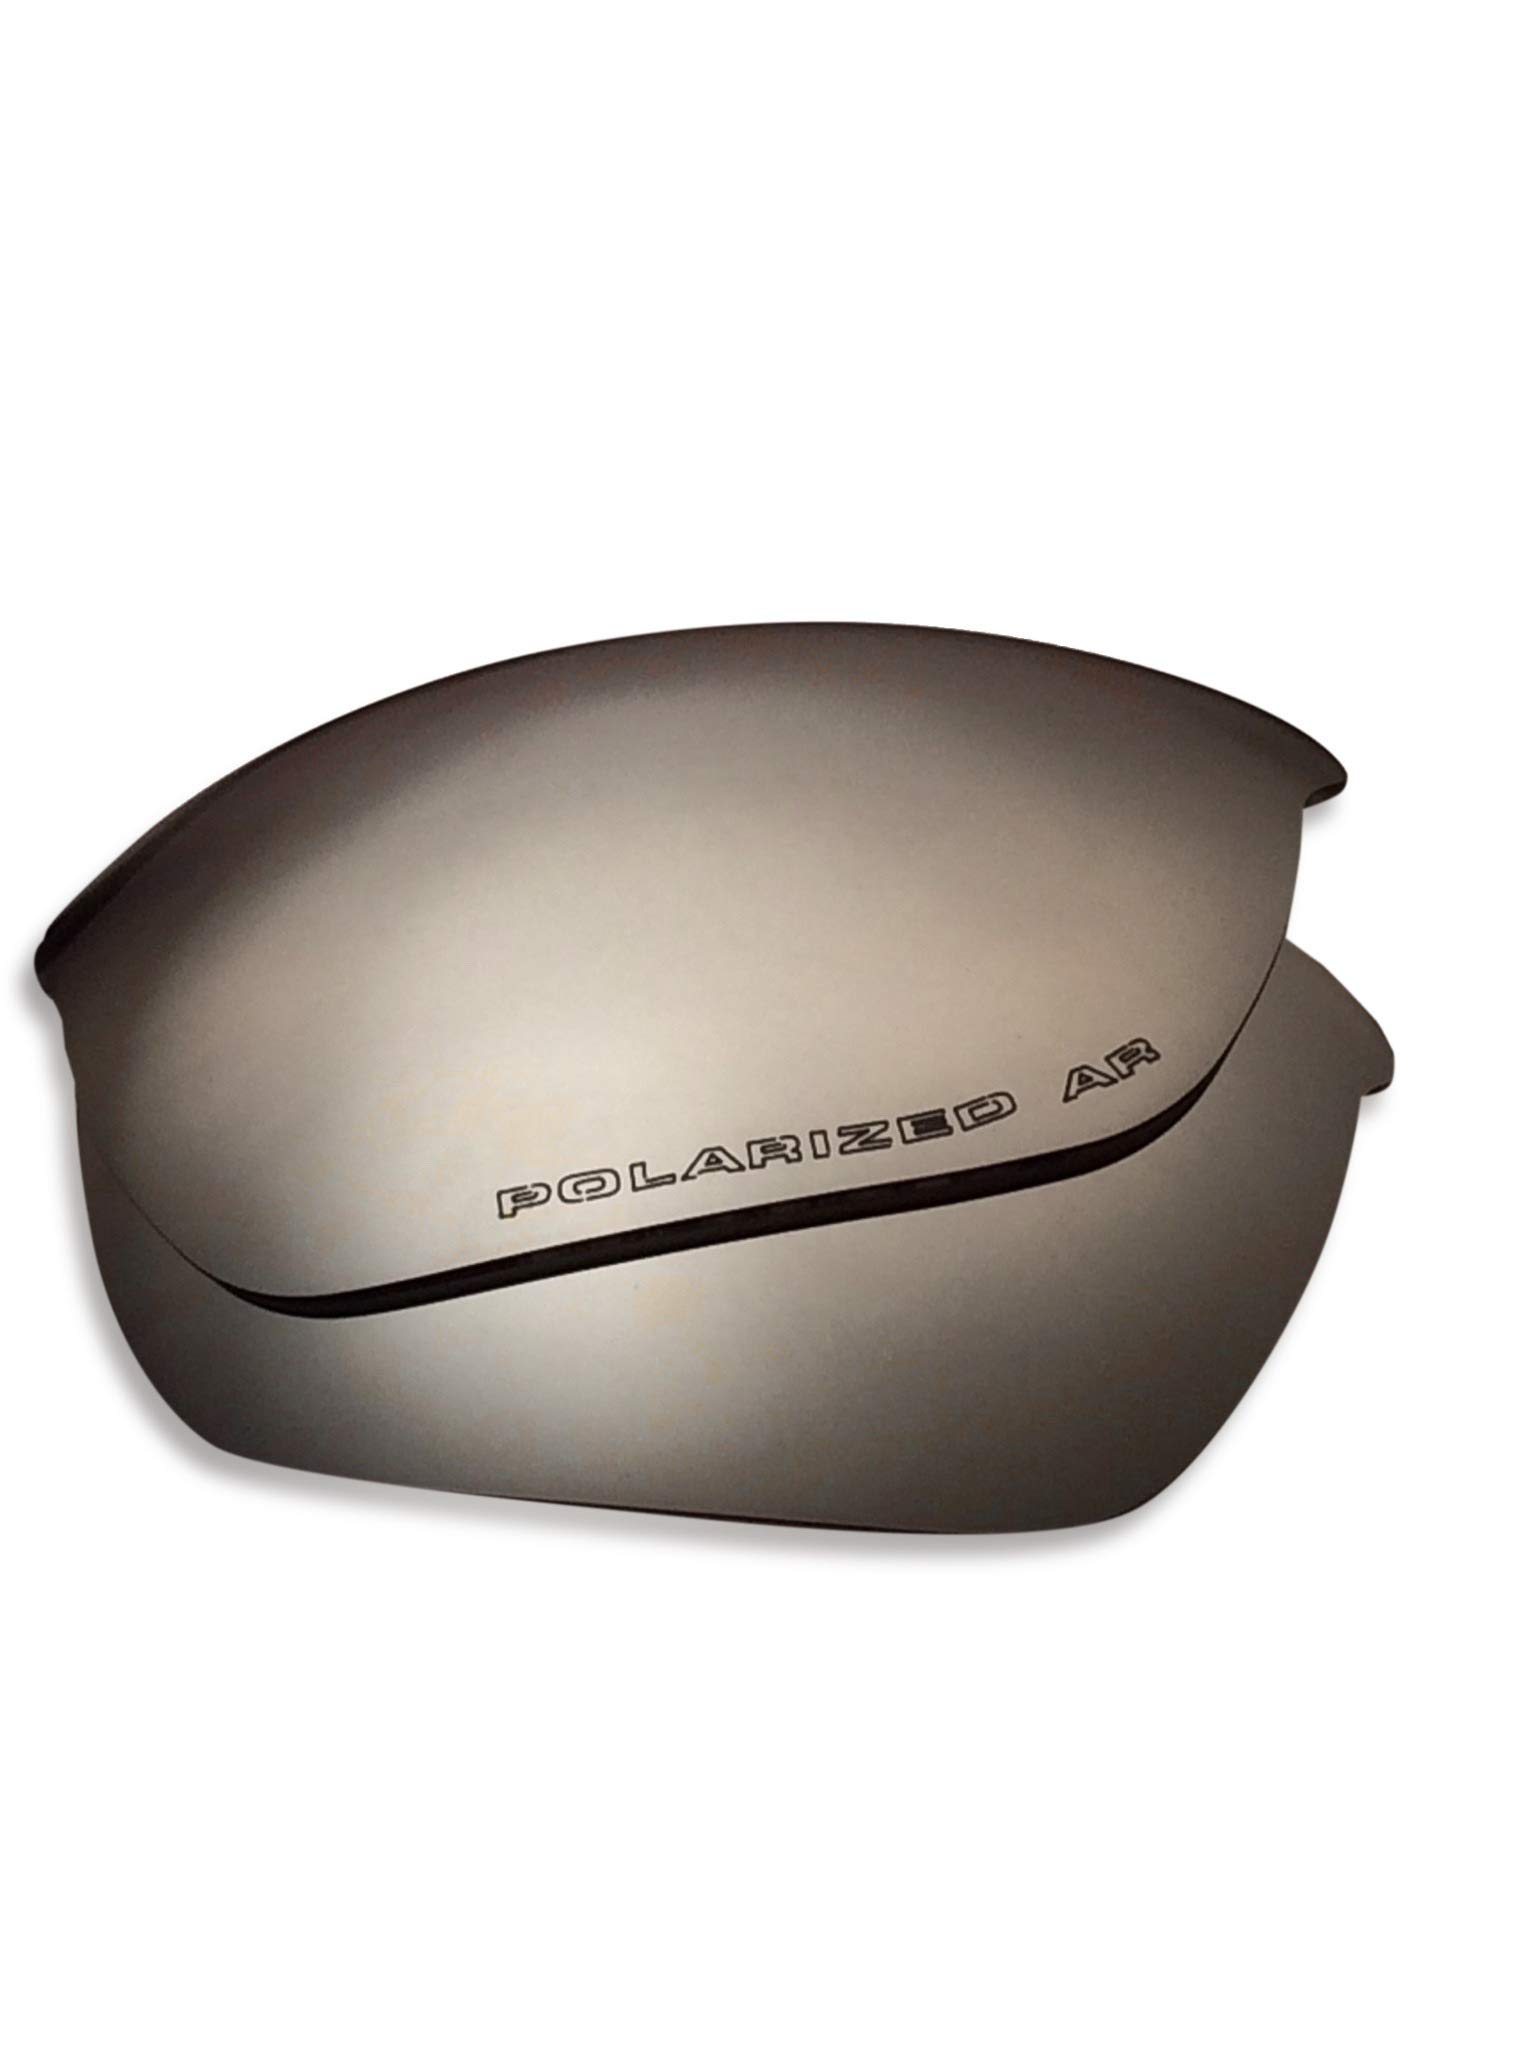 Oakley Half Jacket 2.0 Replacement Lenses (Dark Silver Mirror) - Polarized, 1.4 mm Thick, AR Coated, Added UV Protection, Fits Perfectly, for Men & Women by Lens Swap